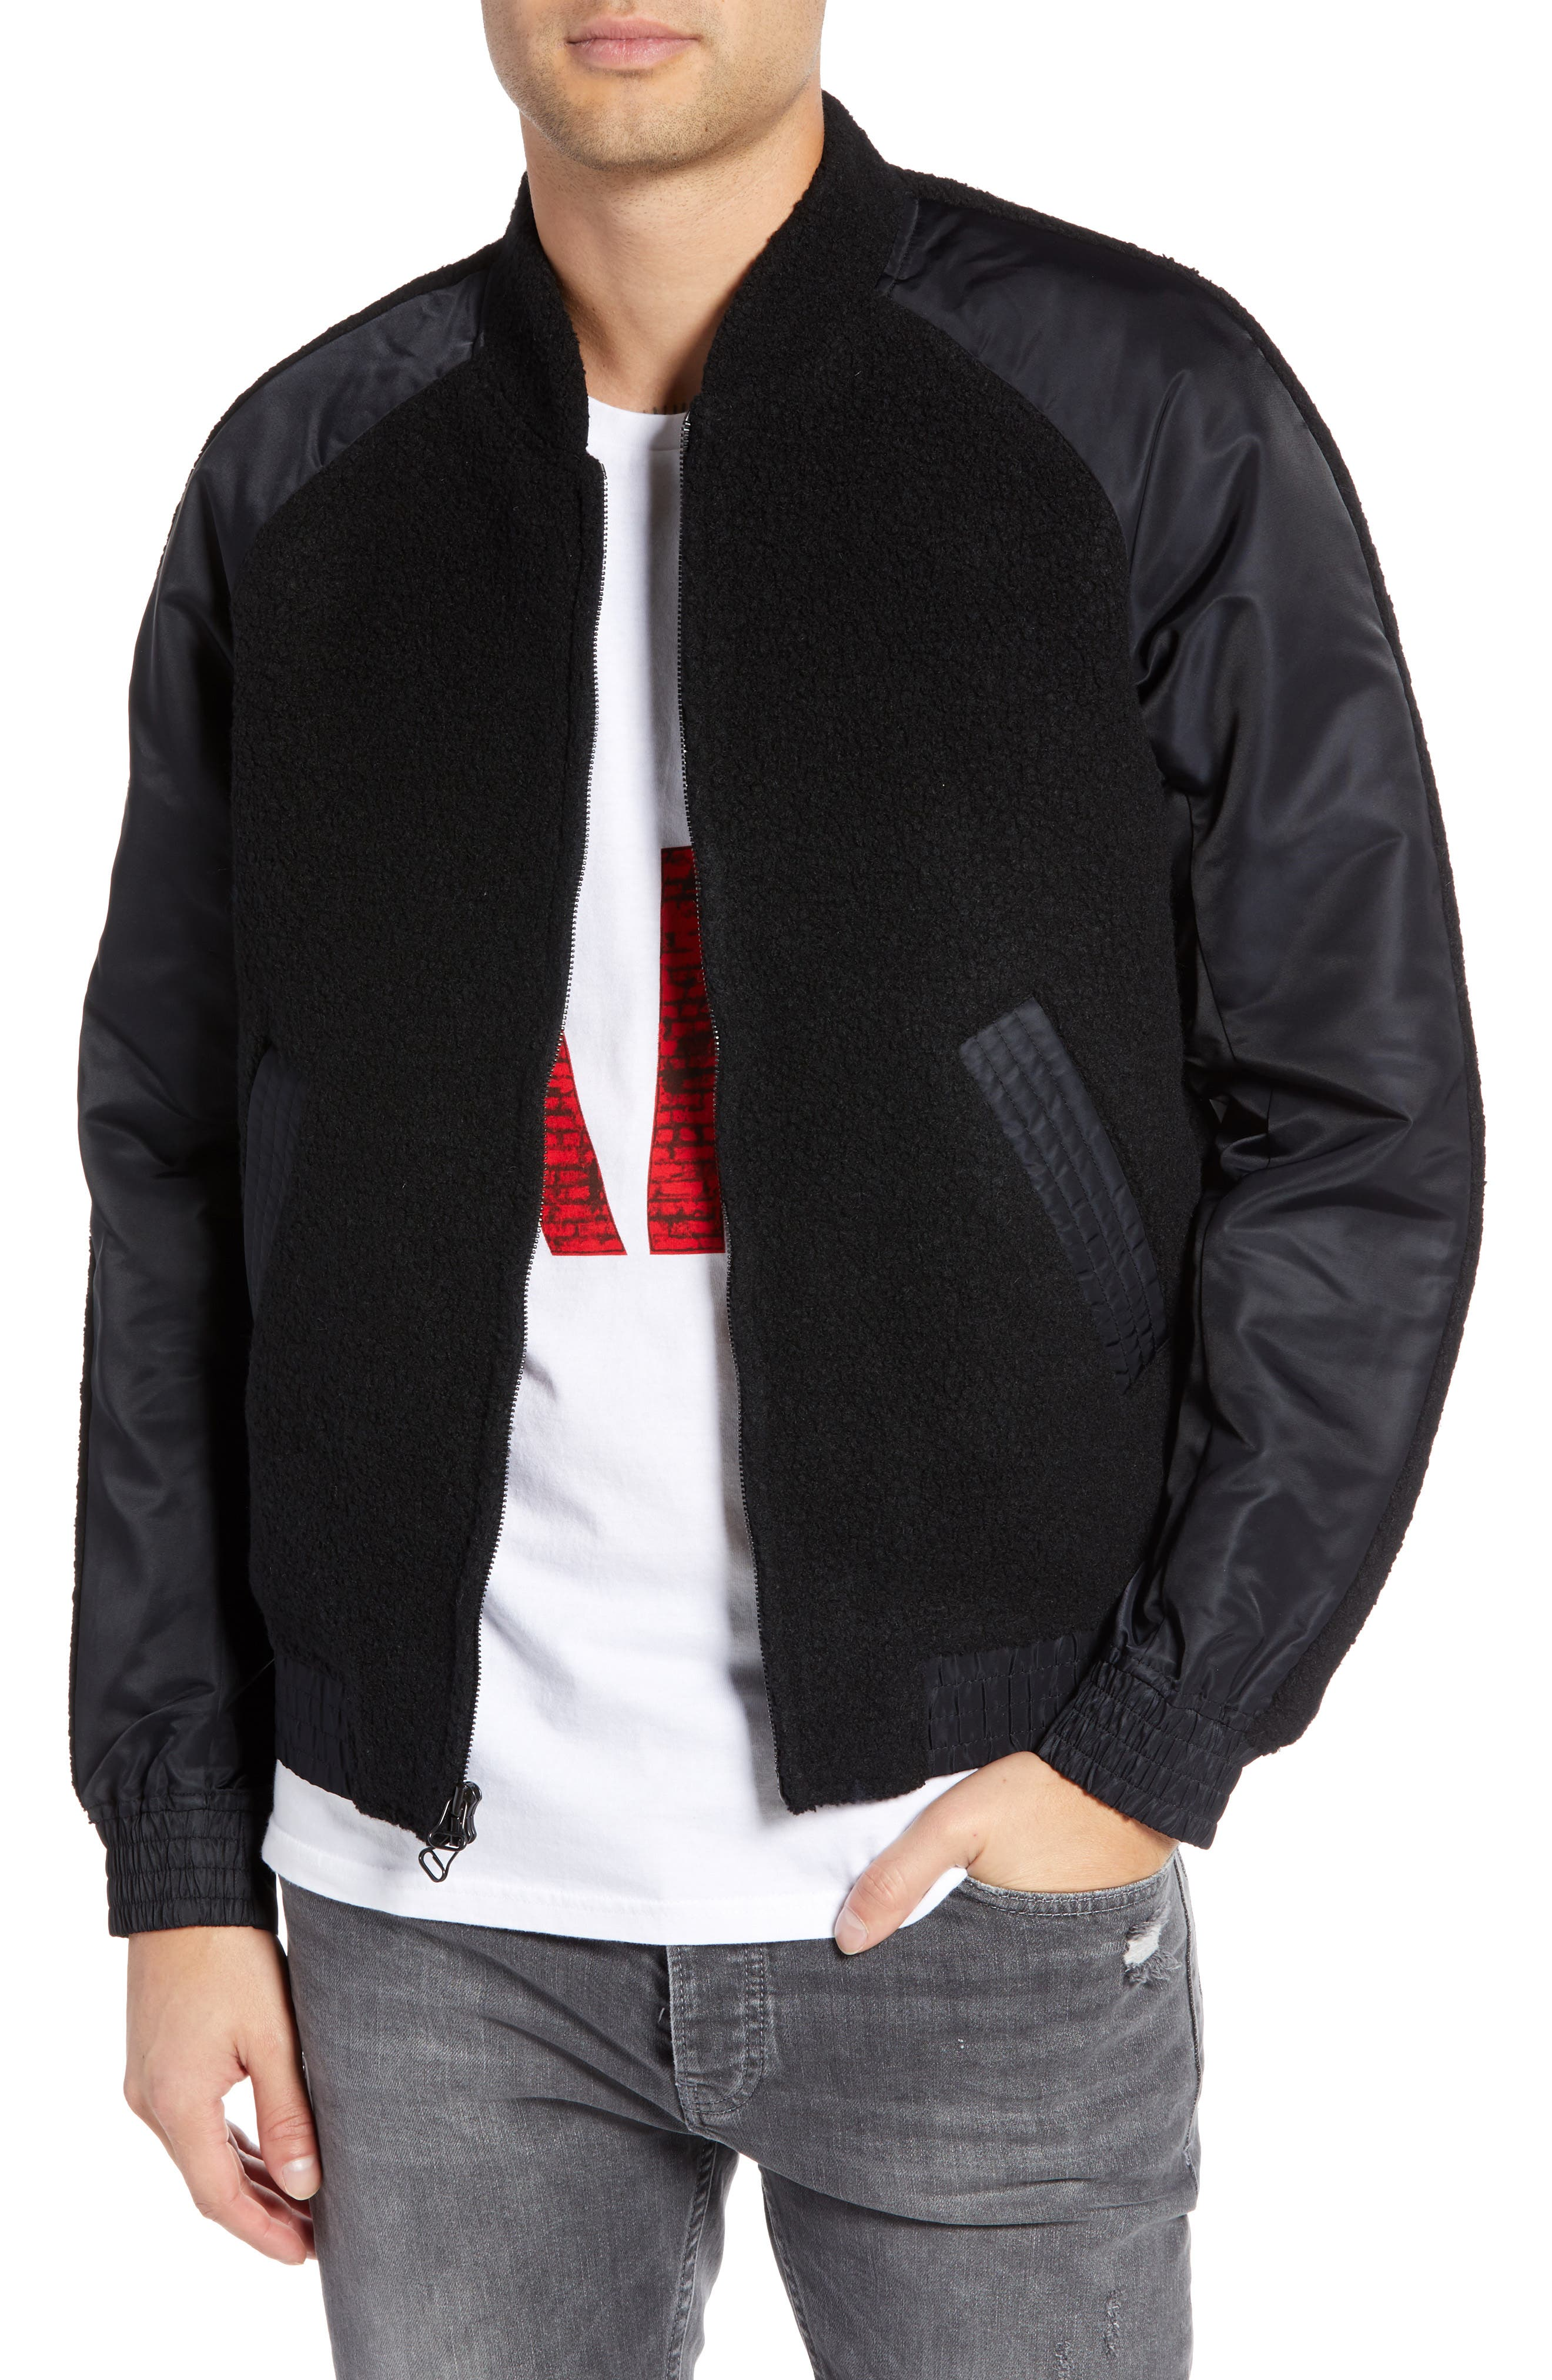 Souvenir Bomber Jacket,                         Main,                         color, 001